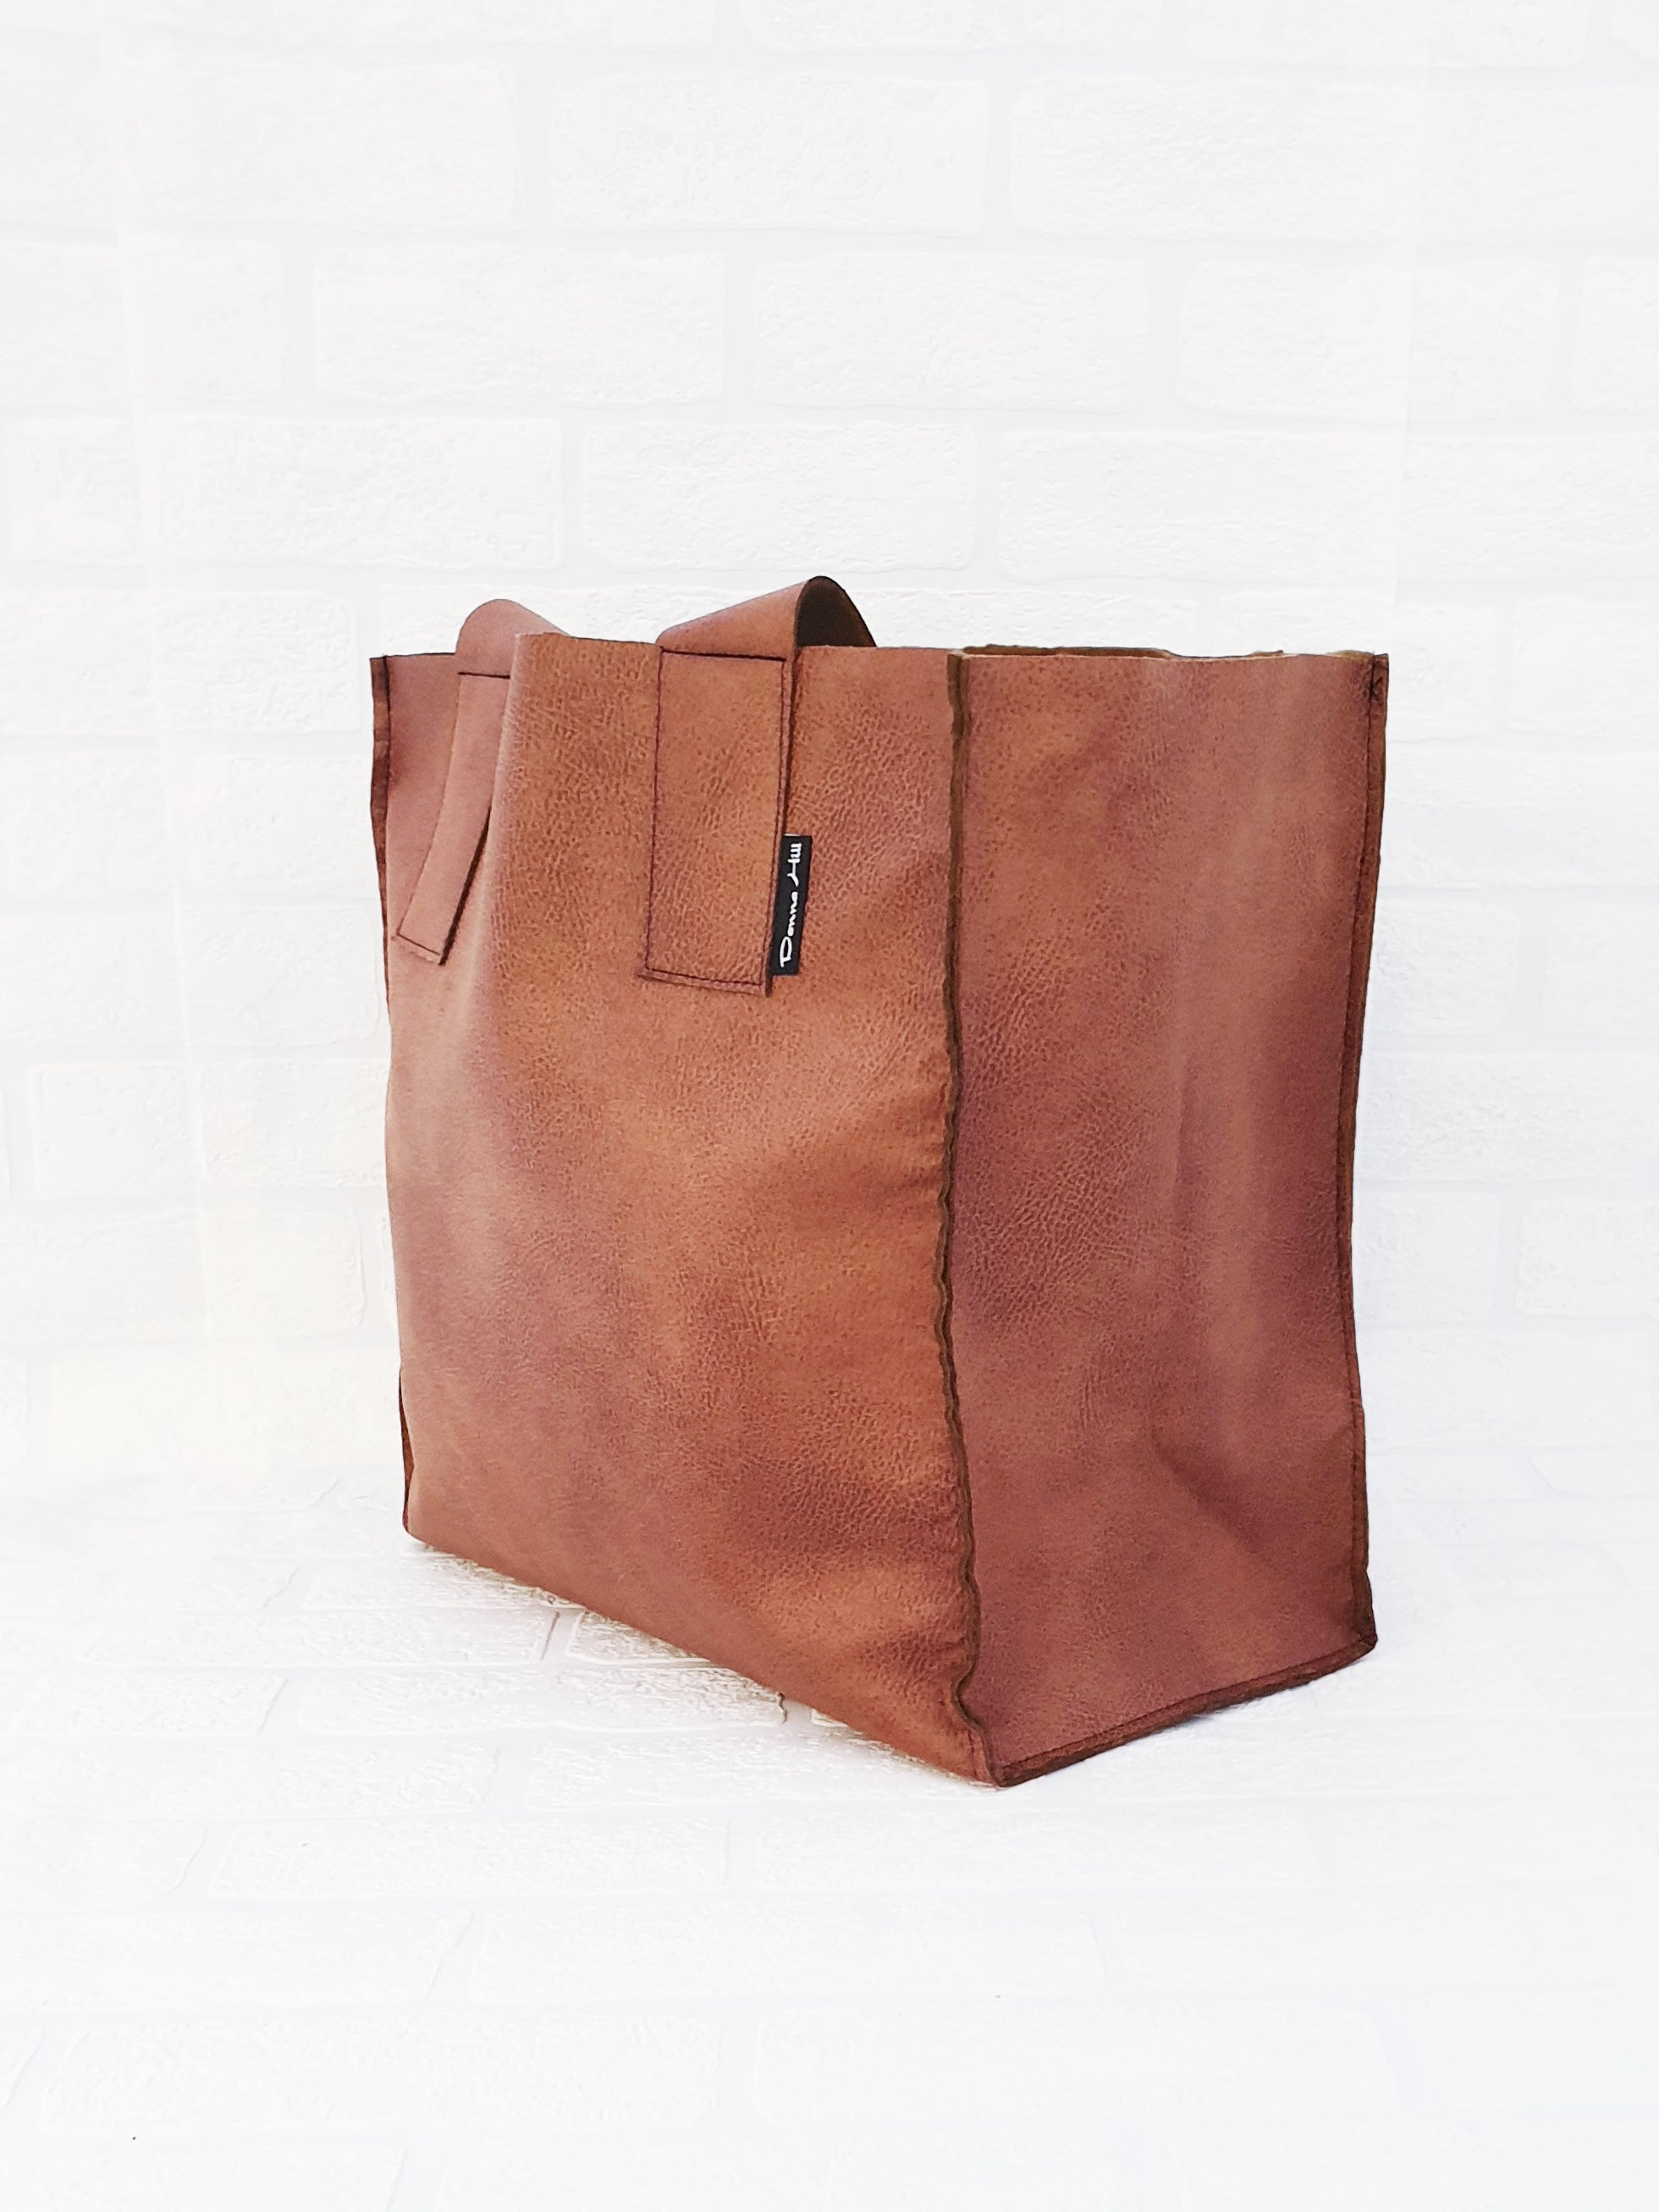 The Complete Tan Shopping Bag Set